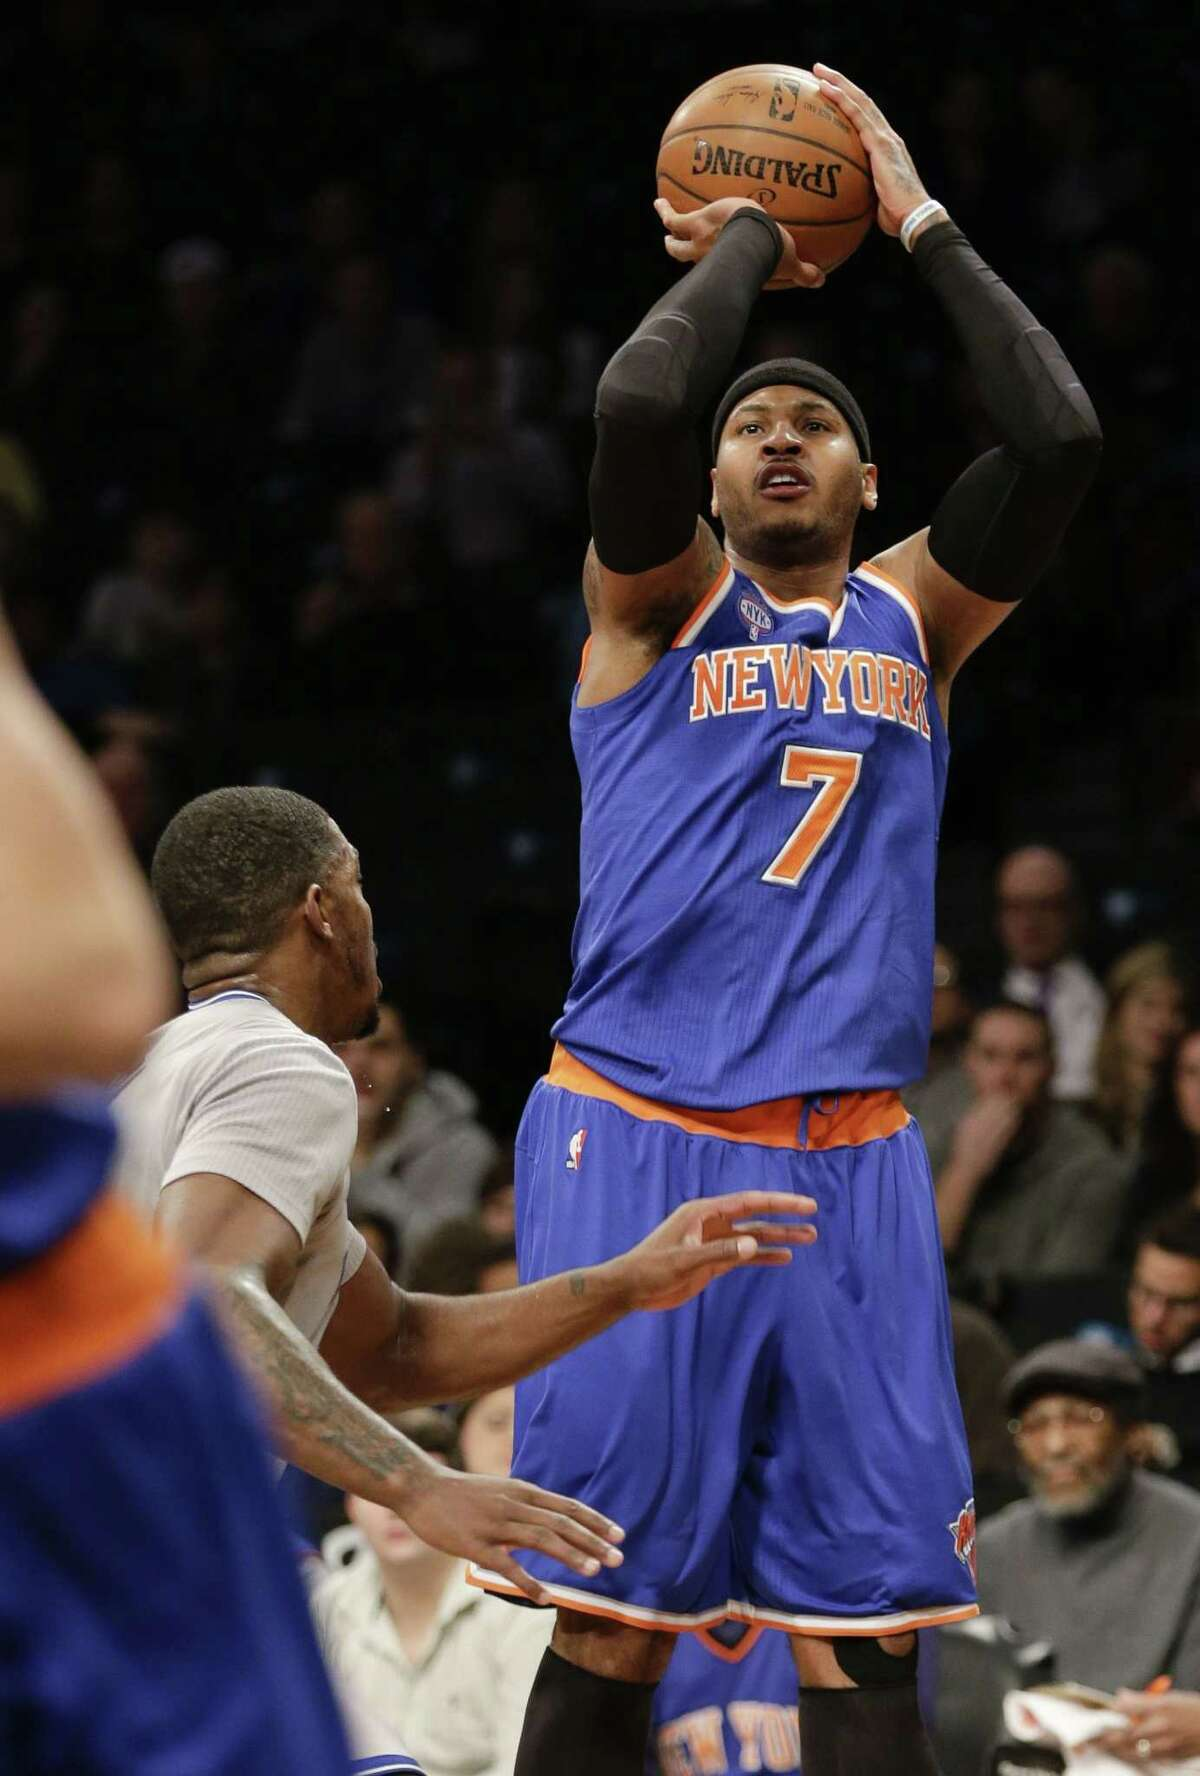 The Knicks' Carmelo Anthony (7) shoots during a recent game.